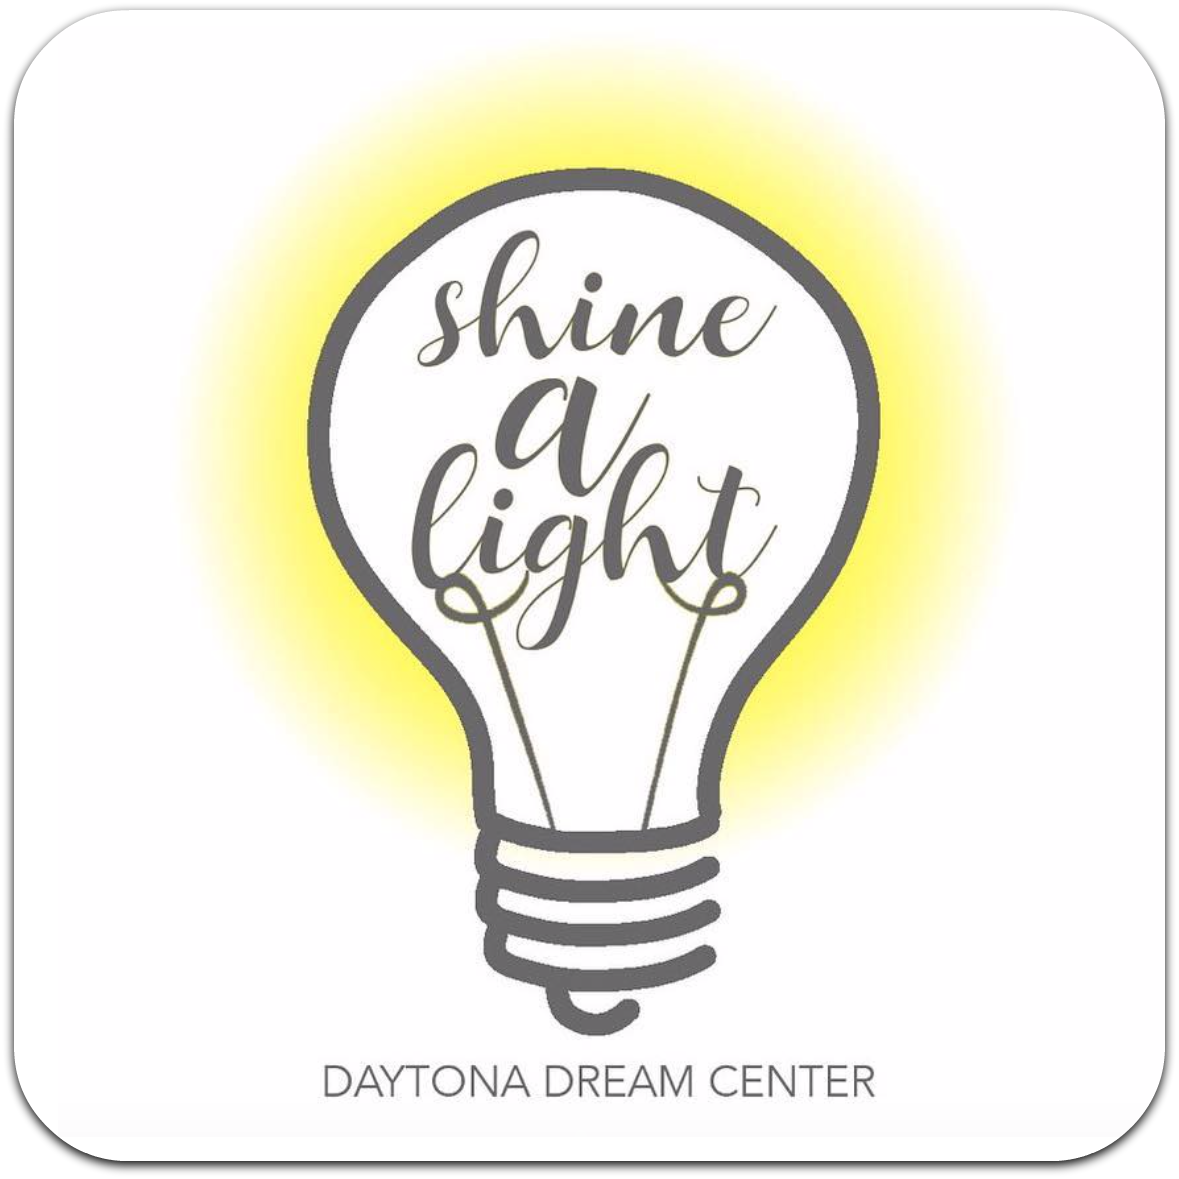 Daytona Dream Center - Shine a Light